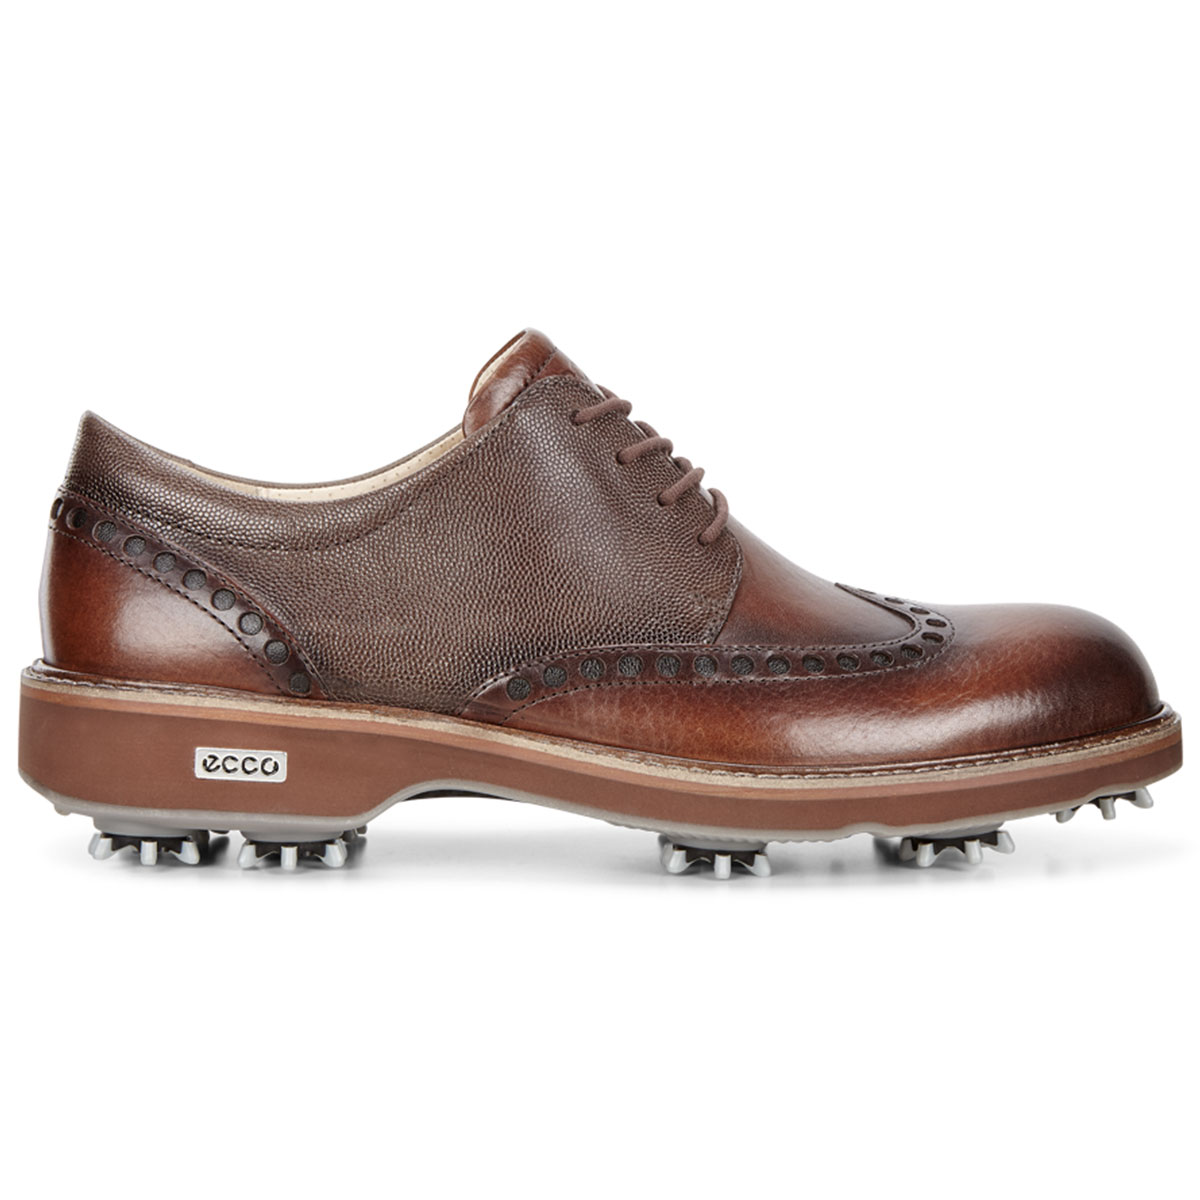 Ecco 2017 Mens Classic Lux Leather Spiked Brogue Golf Shoes